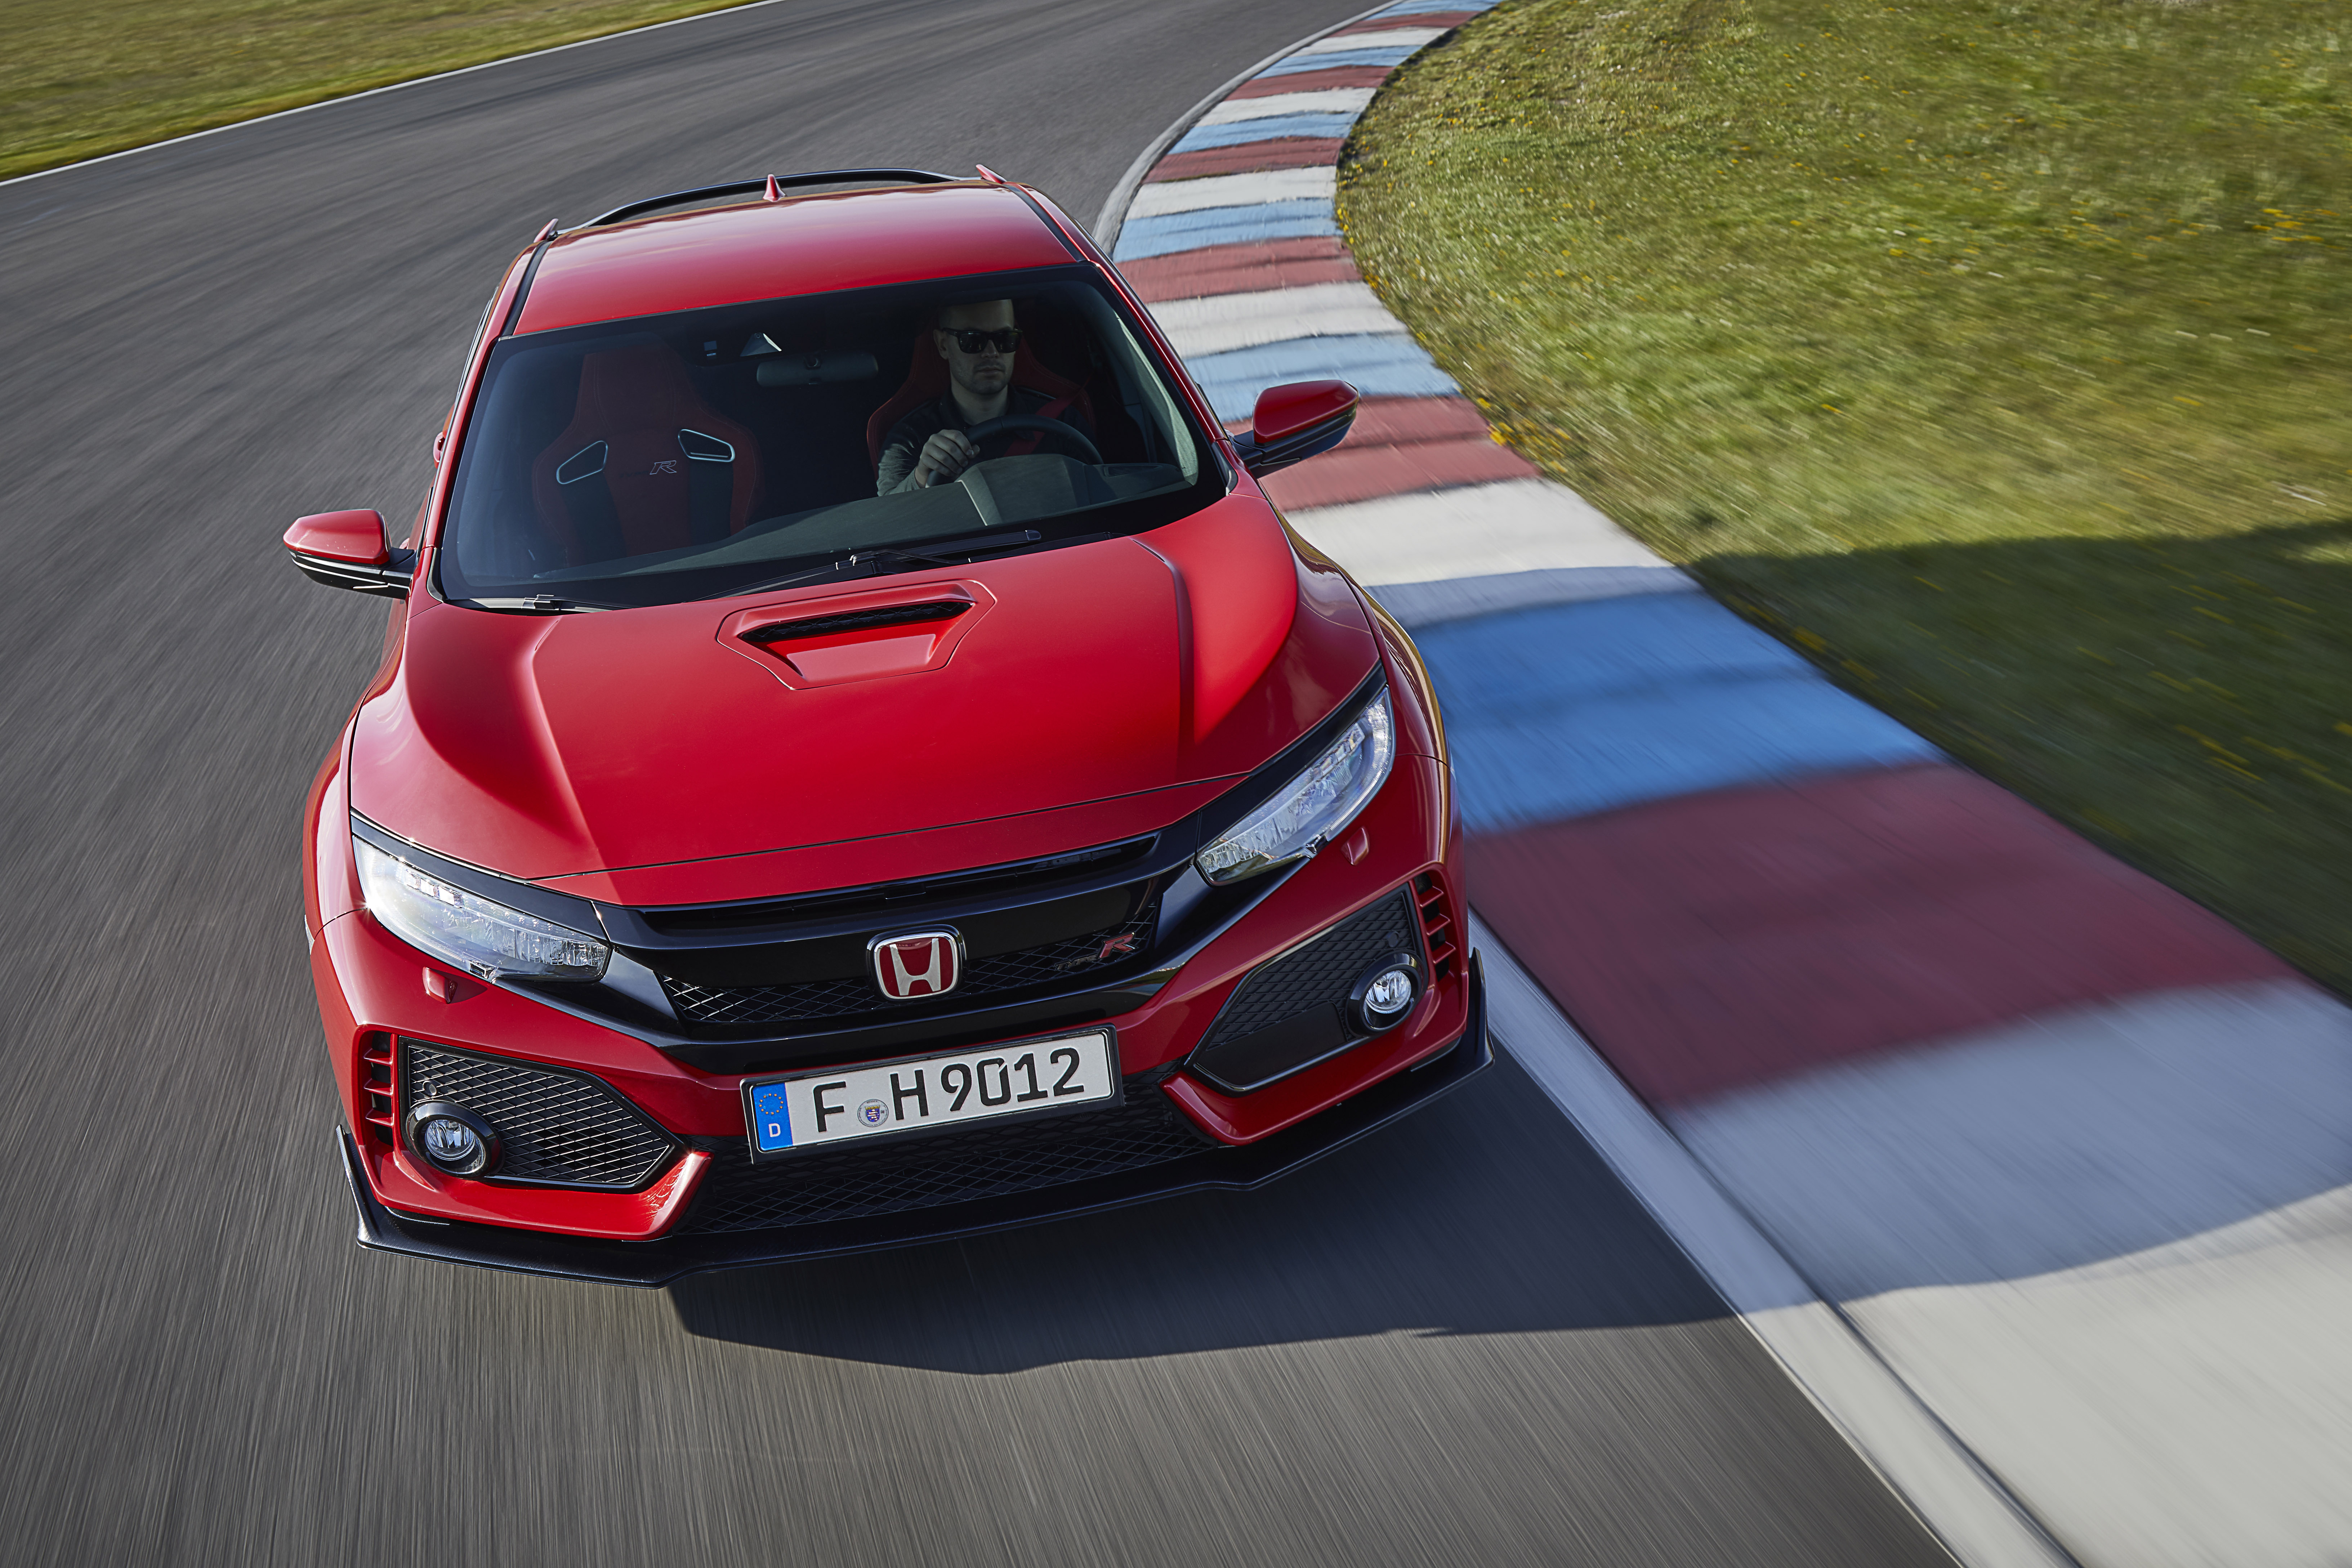 Honda Civic top front in red